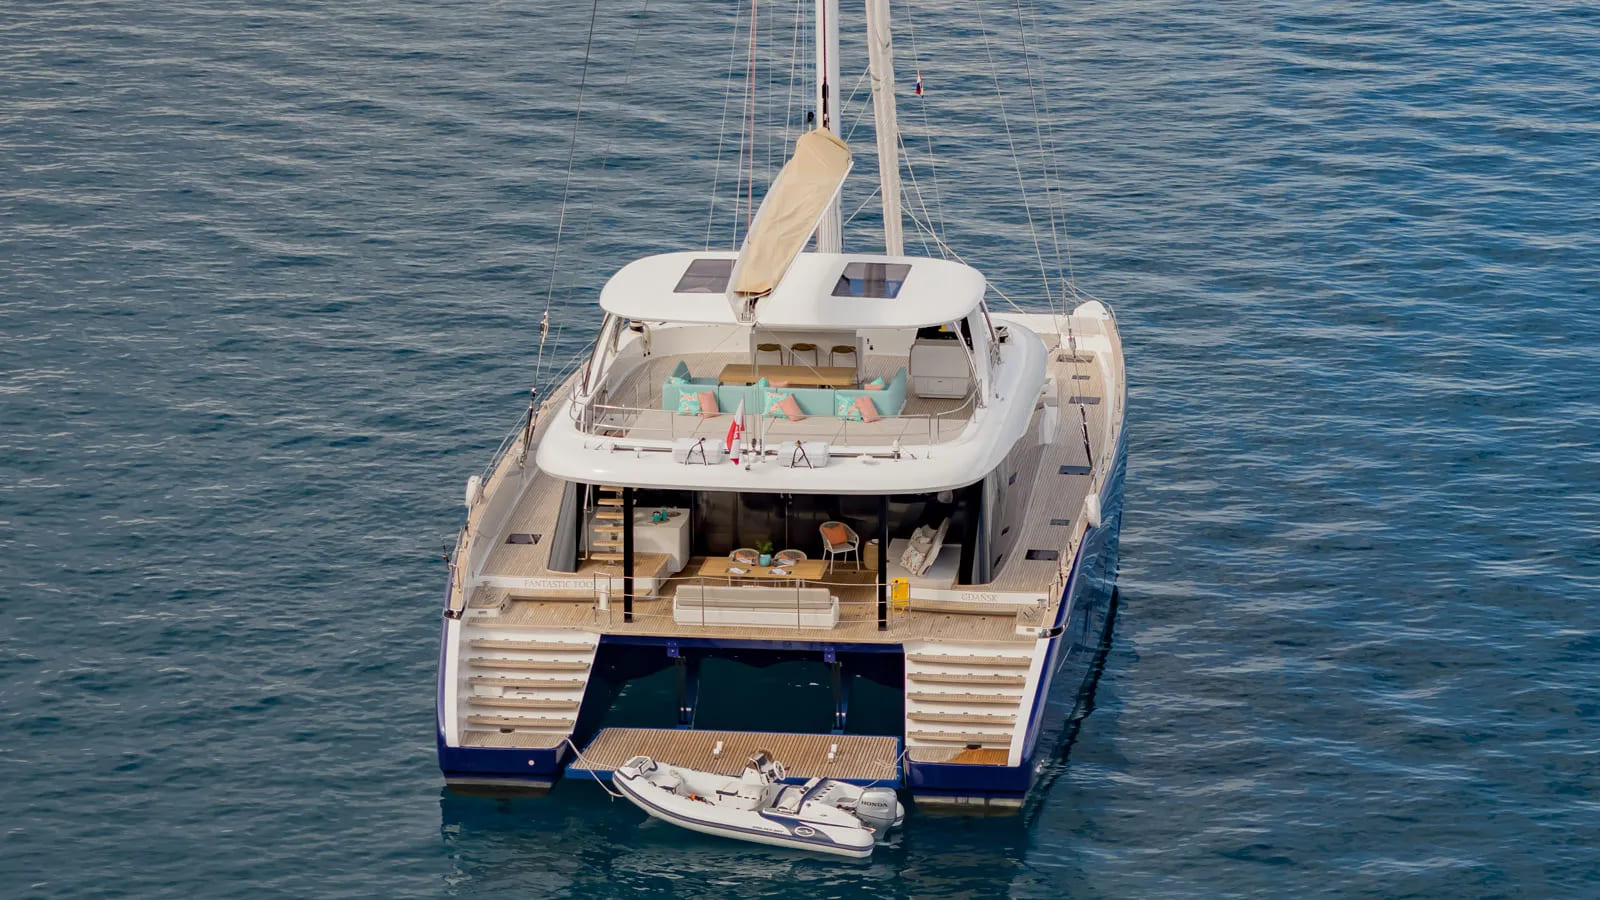 Sunreef 80 fibra de carbono - boat shopping